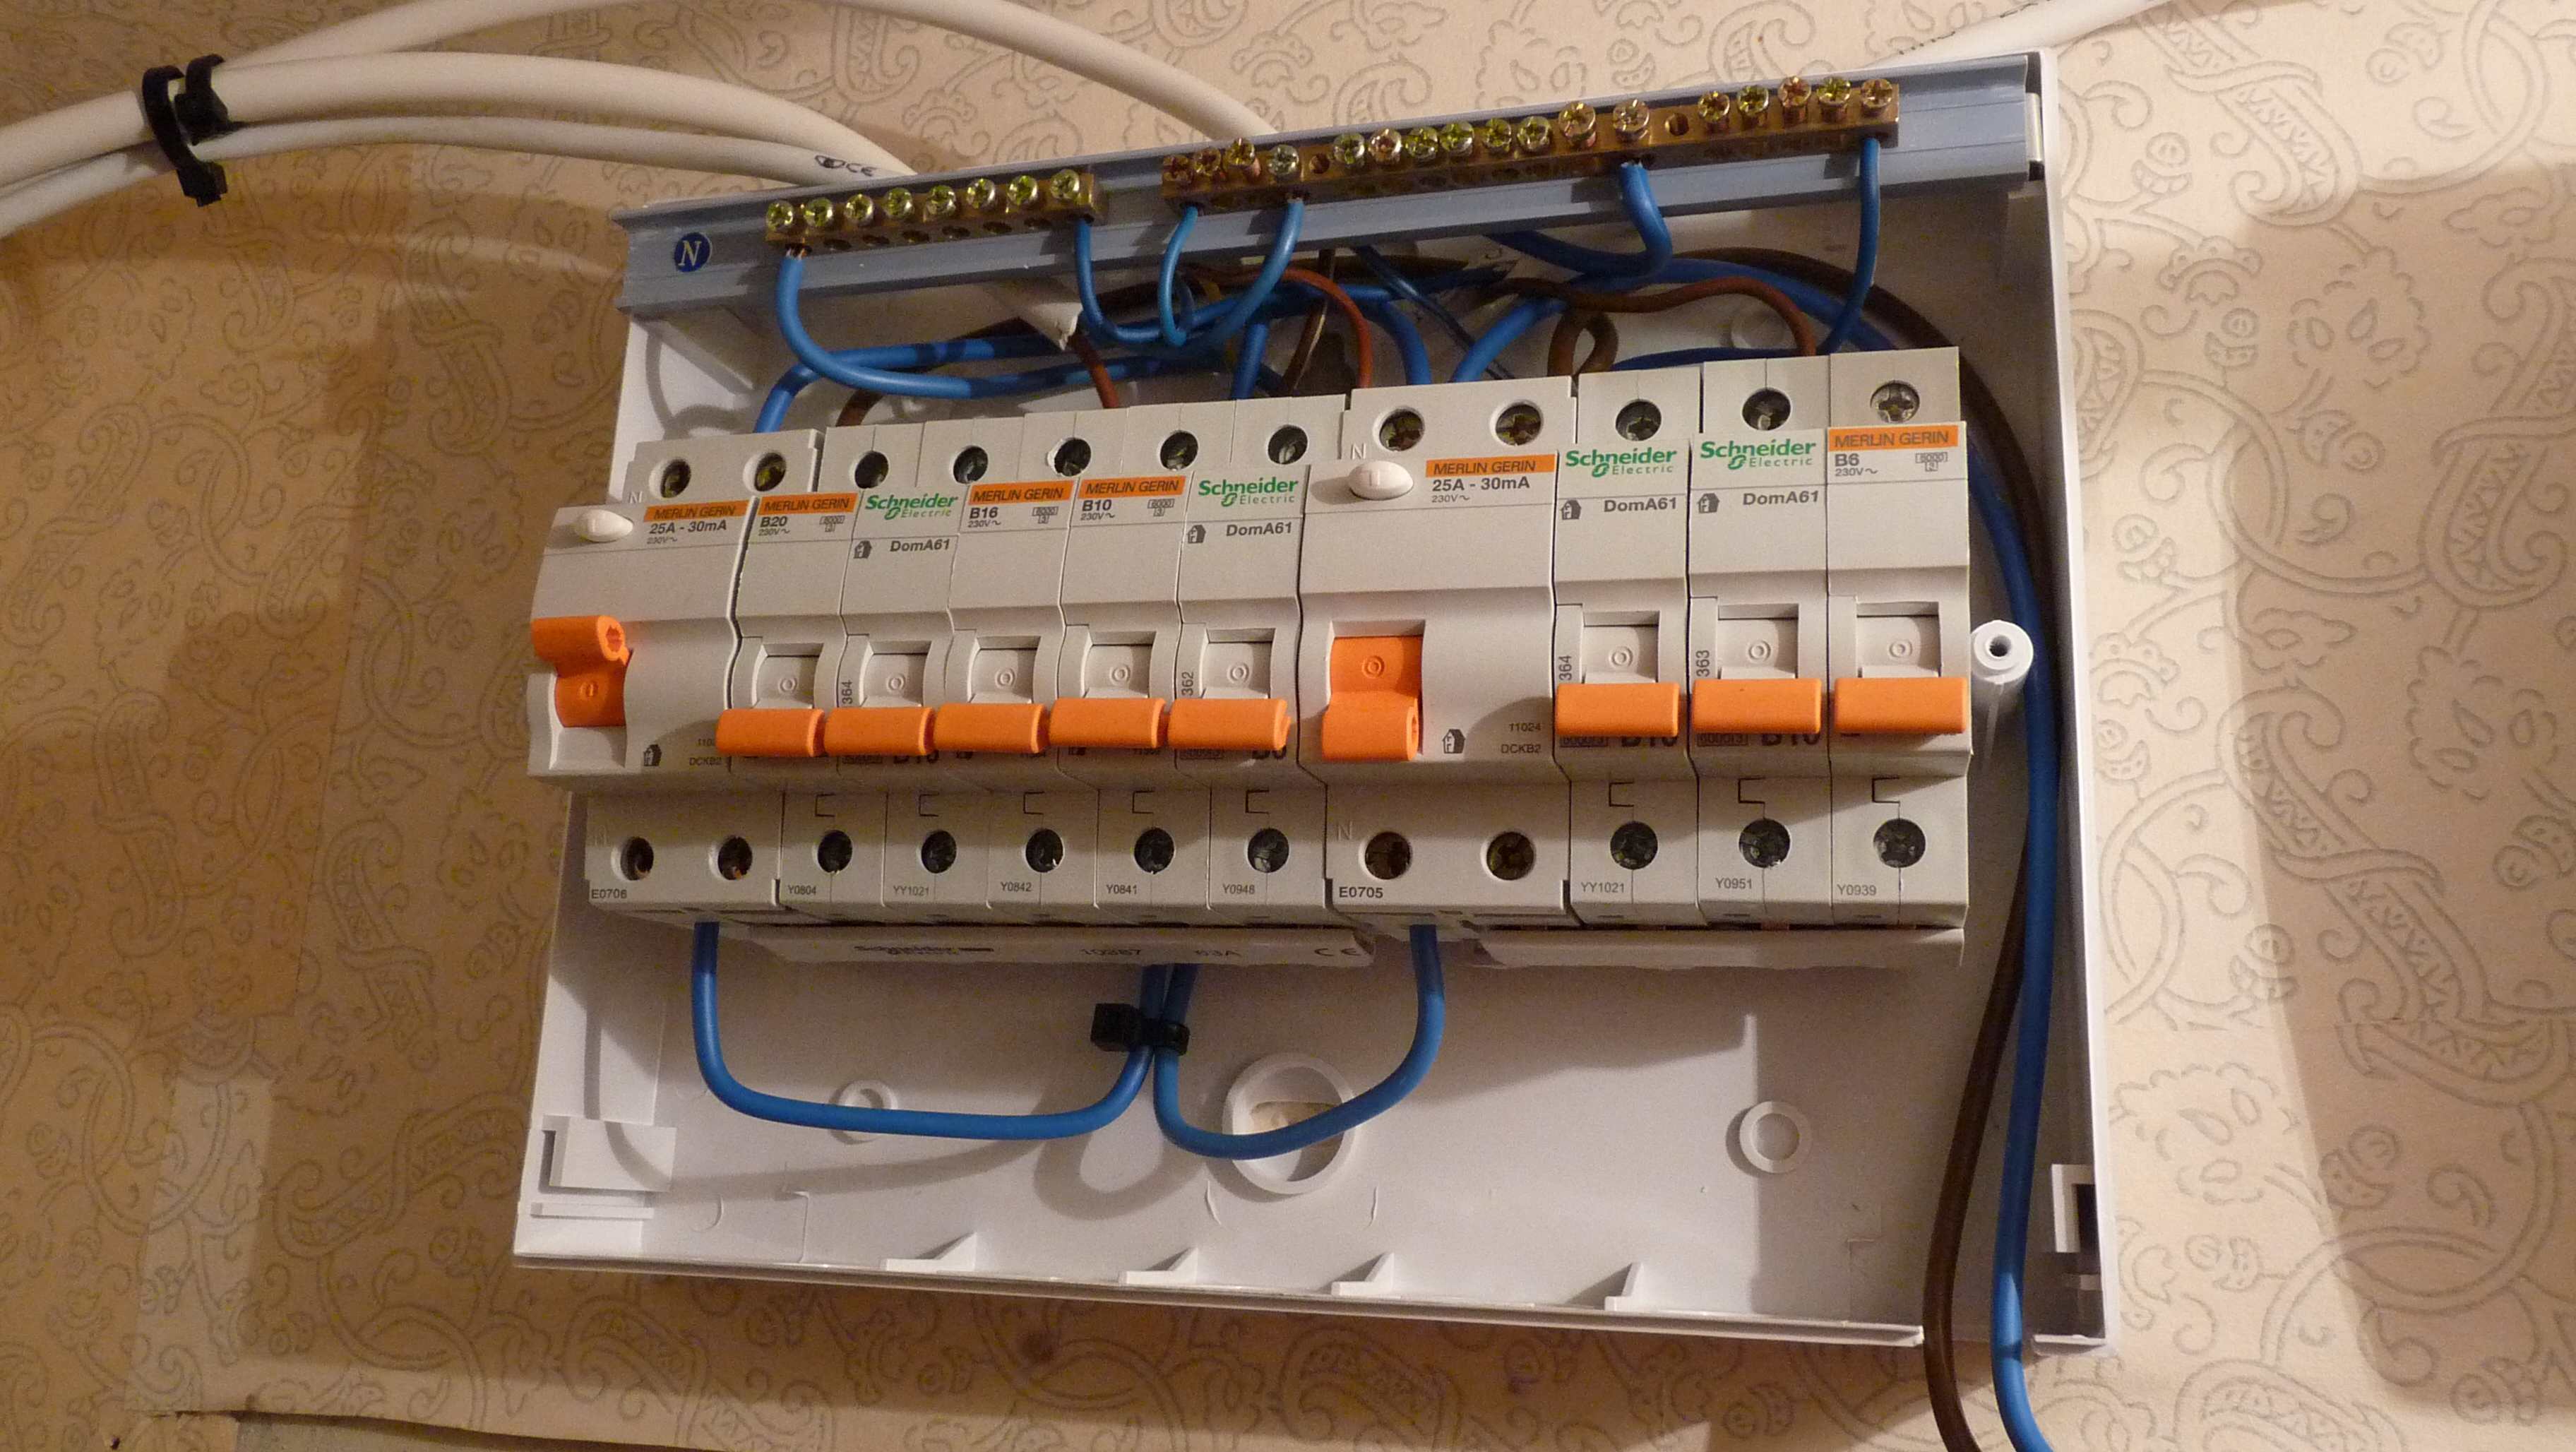 File:Wiring of European fuse box.JPG